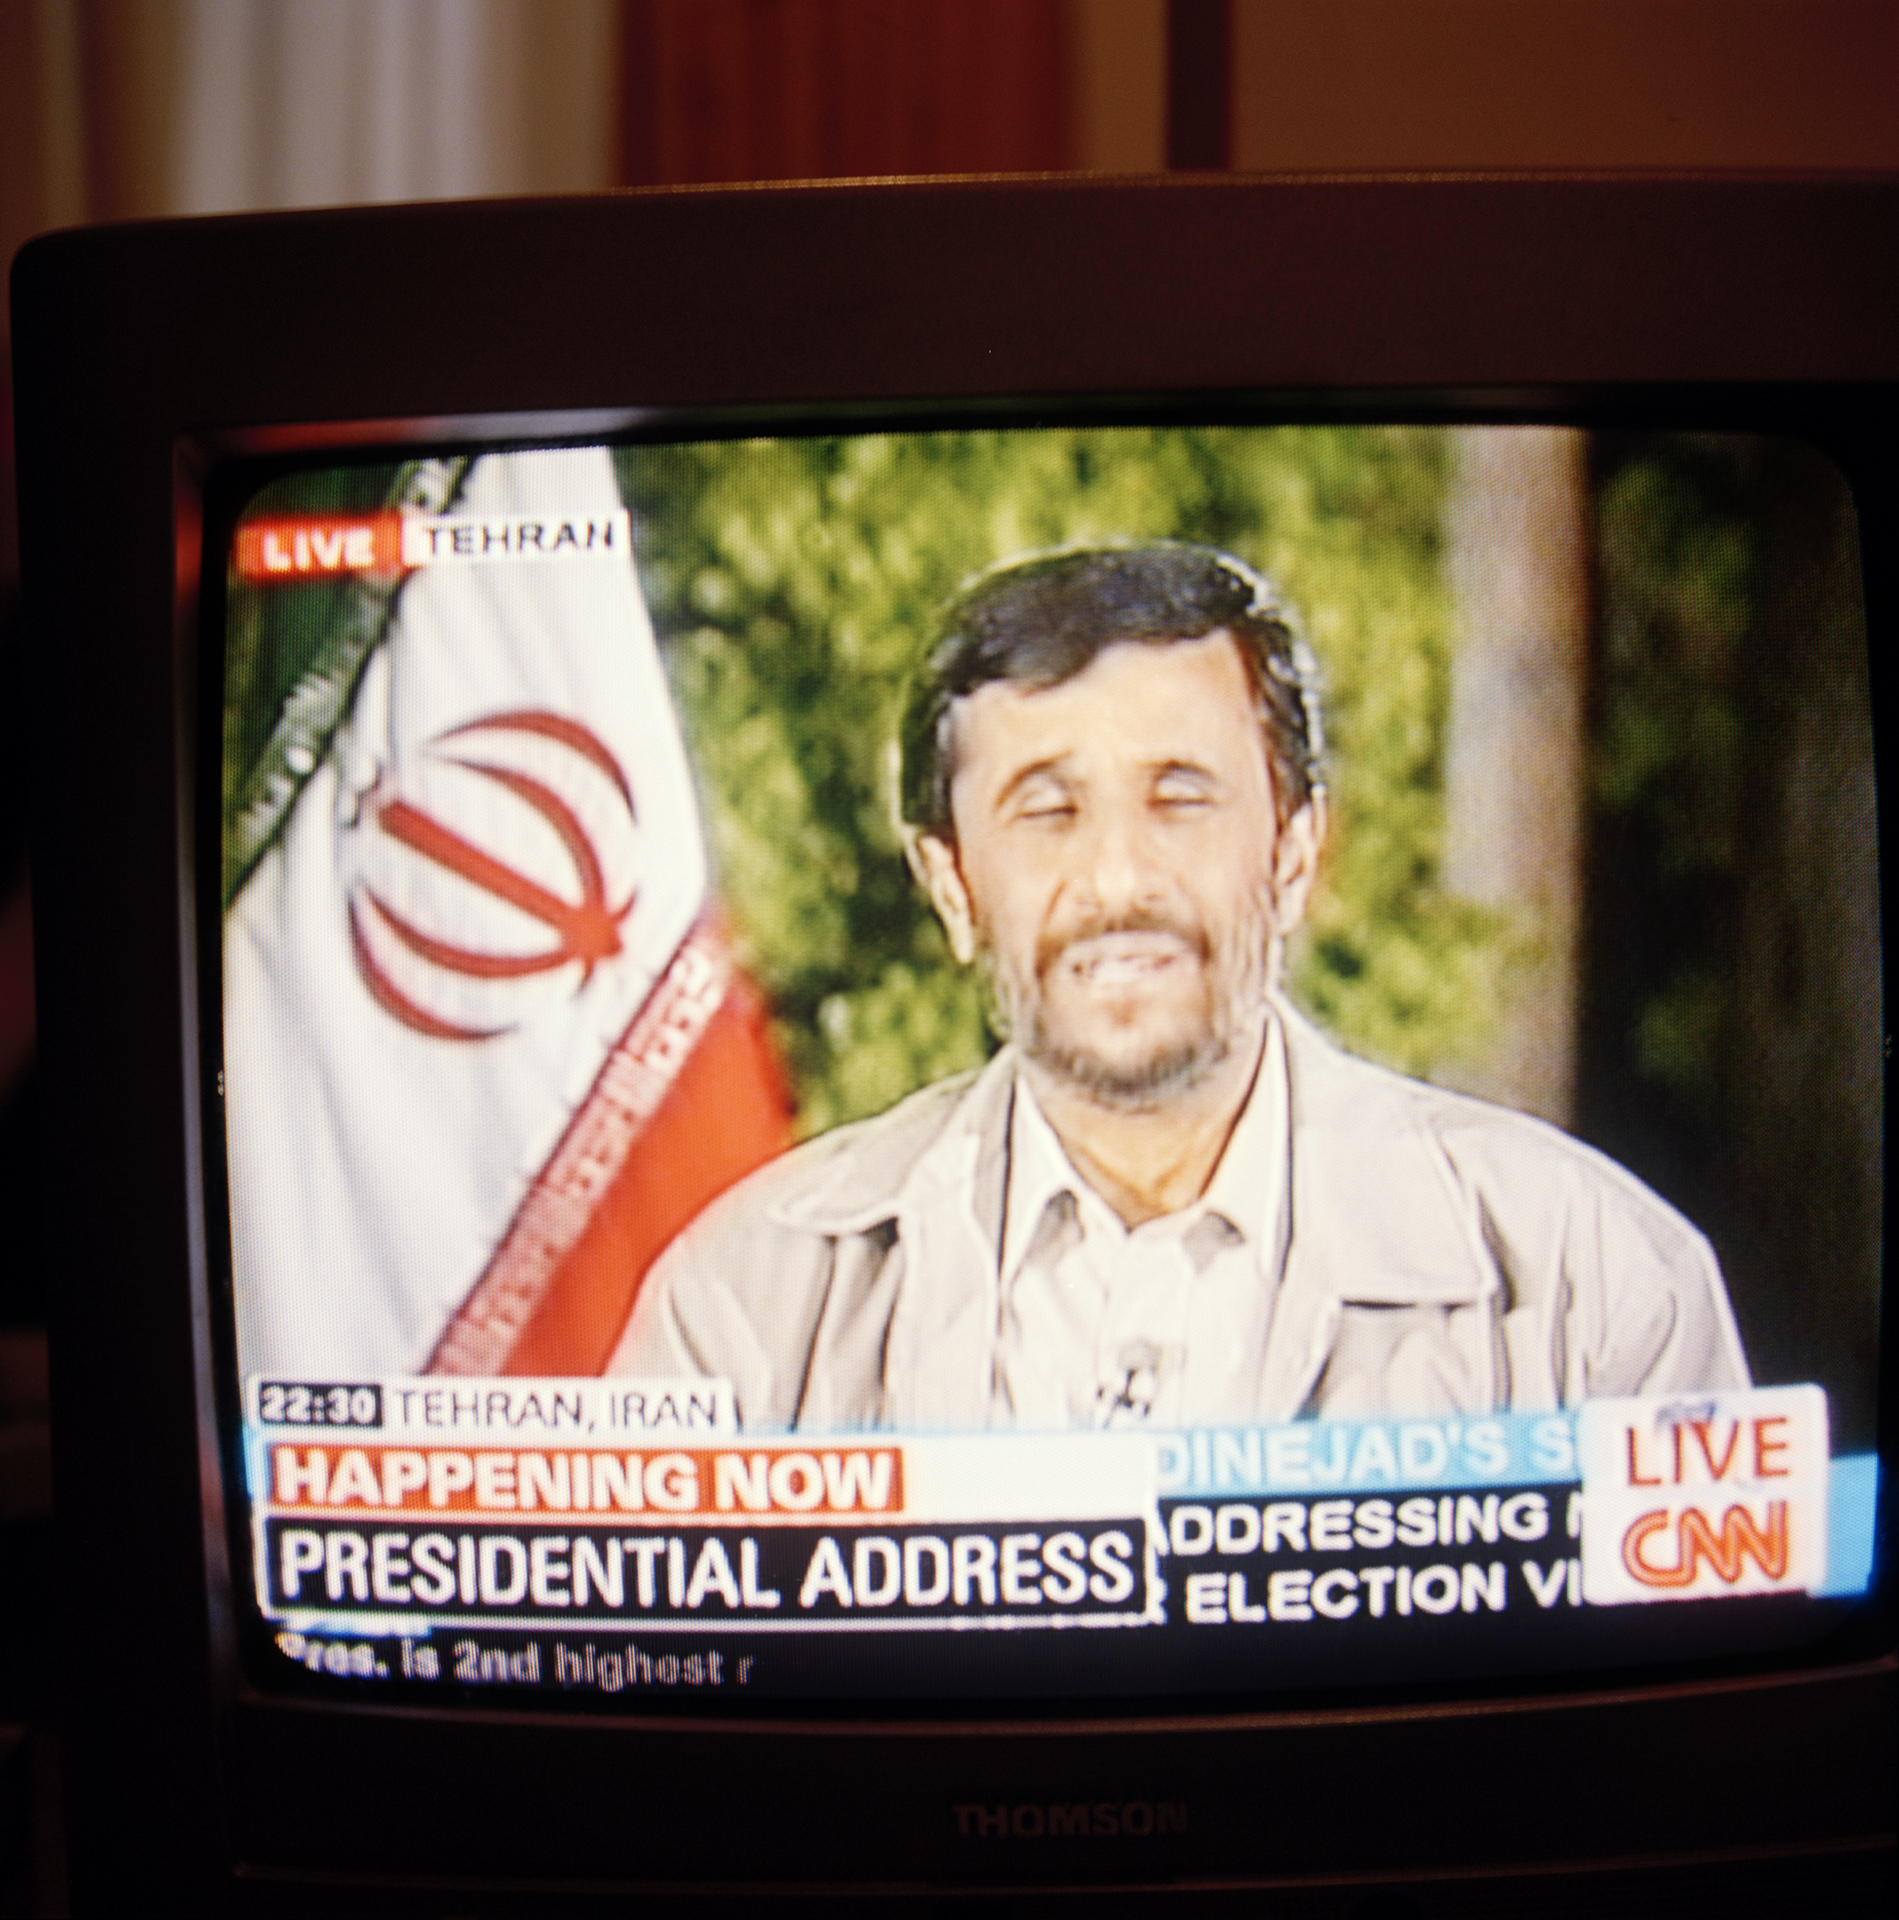 "20:00  With CNN still on the TV, glued to the news coming out of Iran, I watched as Mahmoud Ahmadinejad ""the Iranian George W. Bush"" gave his victory speech. Notice the official time in Iran (22:30) – I had no idea Iran that was 3 hours, 30 minutes ahead of Madrid. I always thought international time zones were separated apart in increments of whole hours. Then I remembered that some countries do that kind of thing. Until I got the film back from the lab I had no idea I had caught with his eyes half shut – how appropriate."